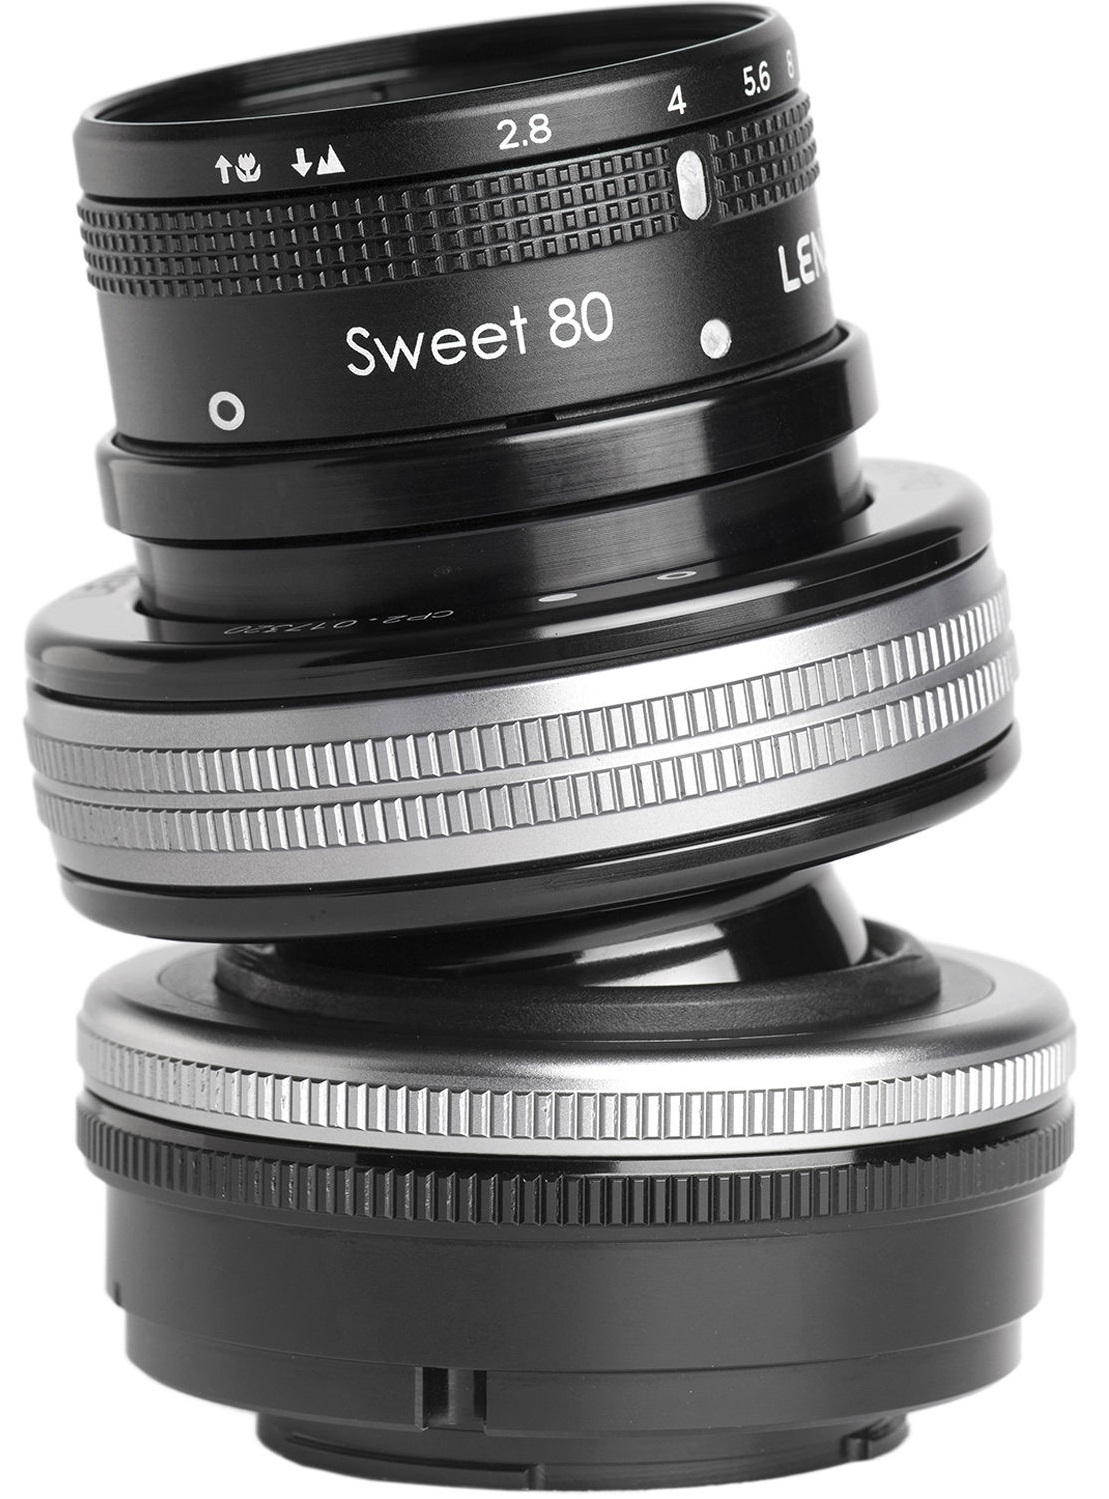 LENSBABY Composer Pro II Sweet 80 pro Canon EOS